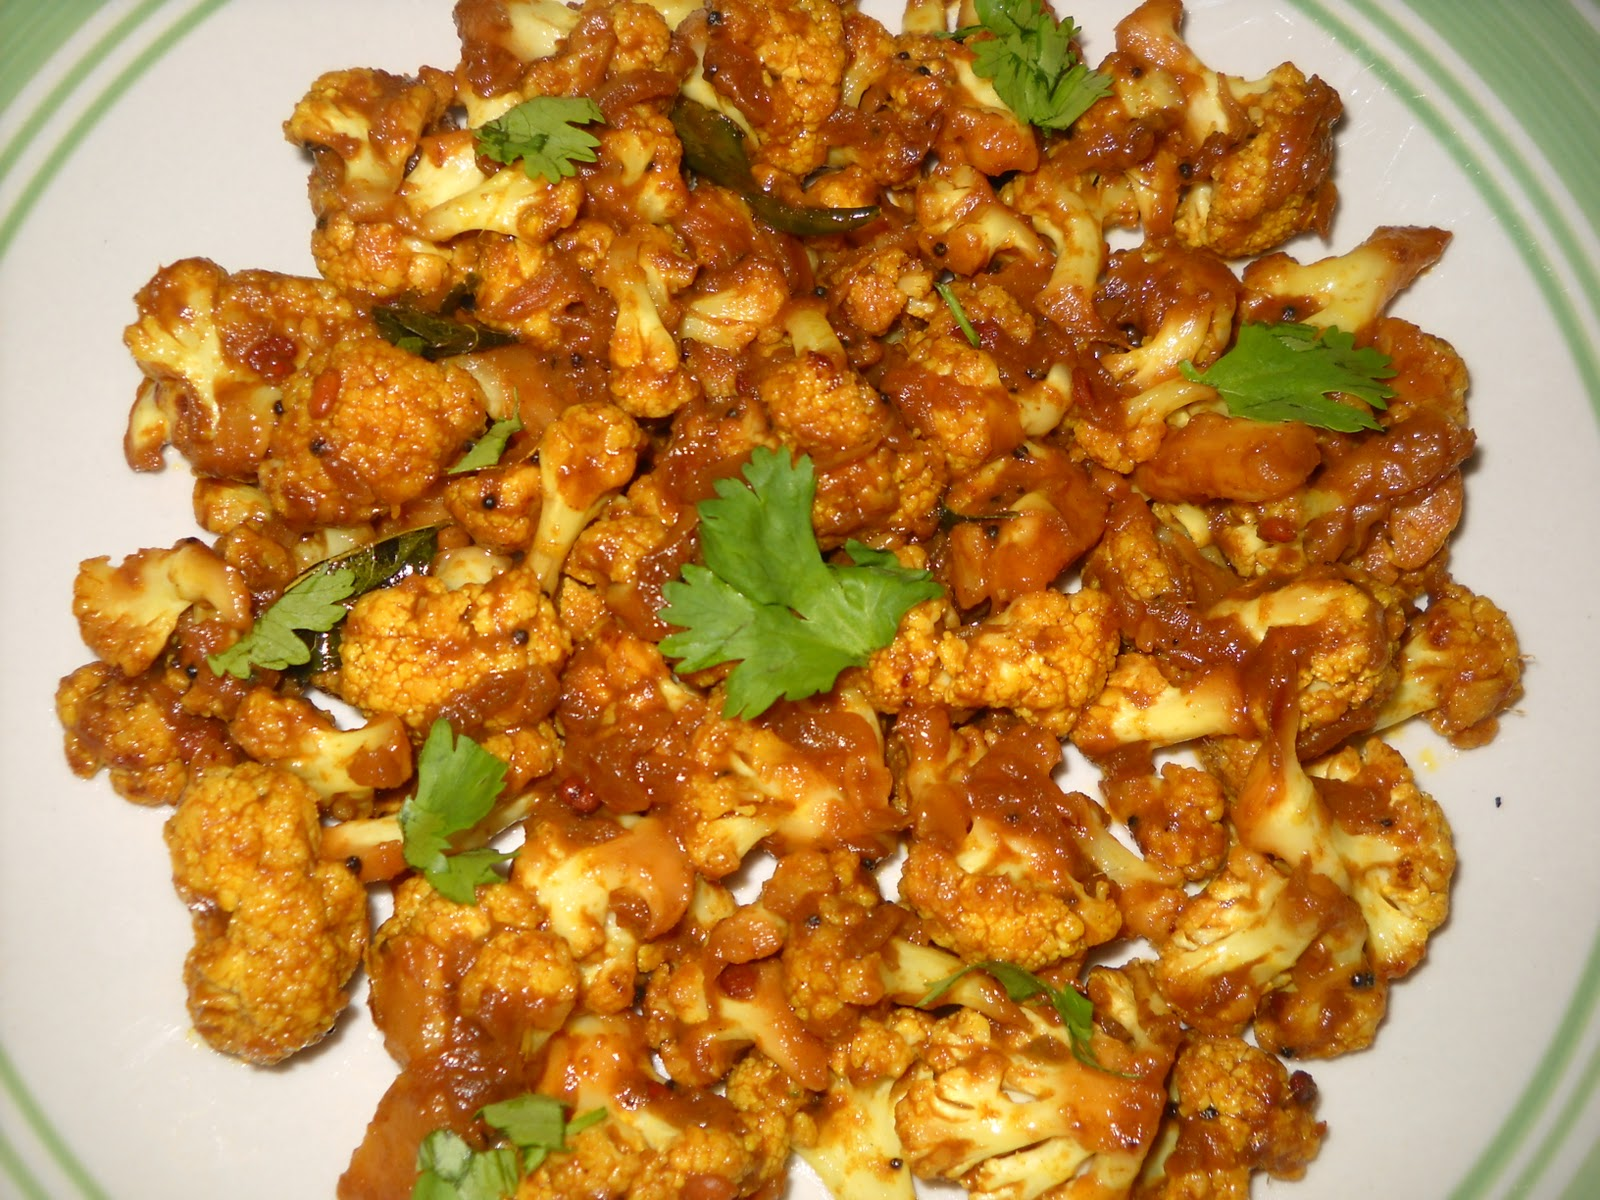 Pan Fried Cauliflower With Yogurt And Soy Sauce Recipes — Dishmaps